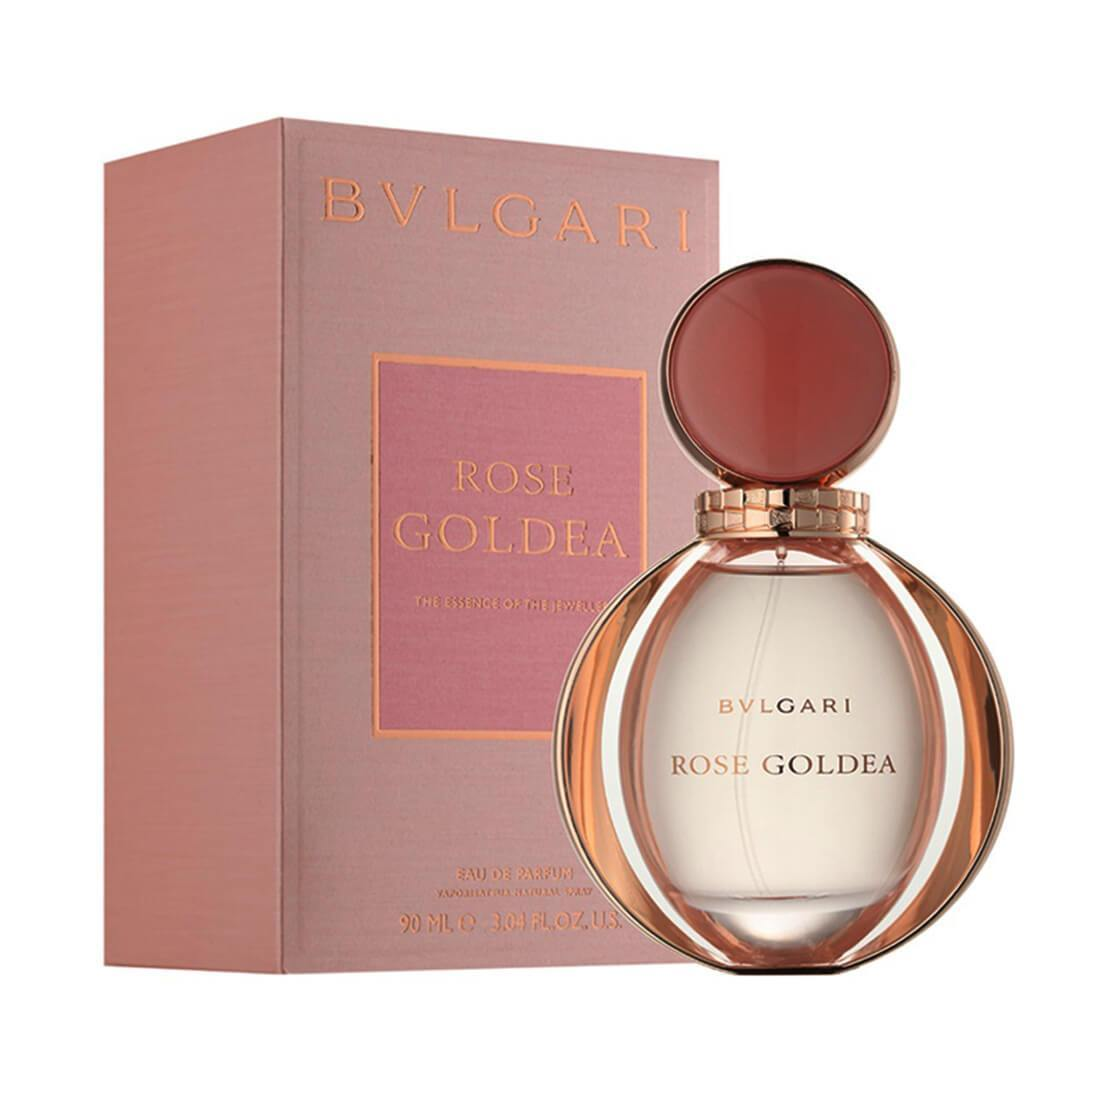 Bvlgari Rose Goldea EDP Perfume - 90ml